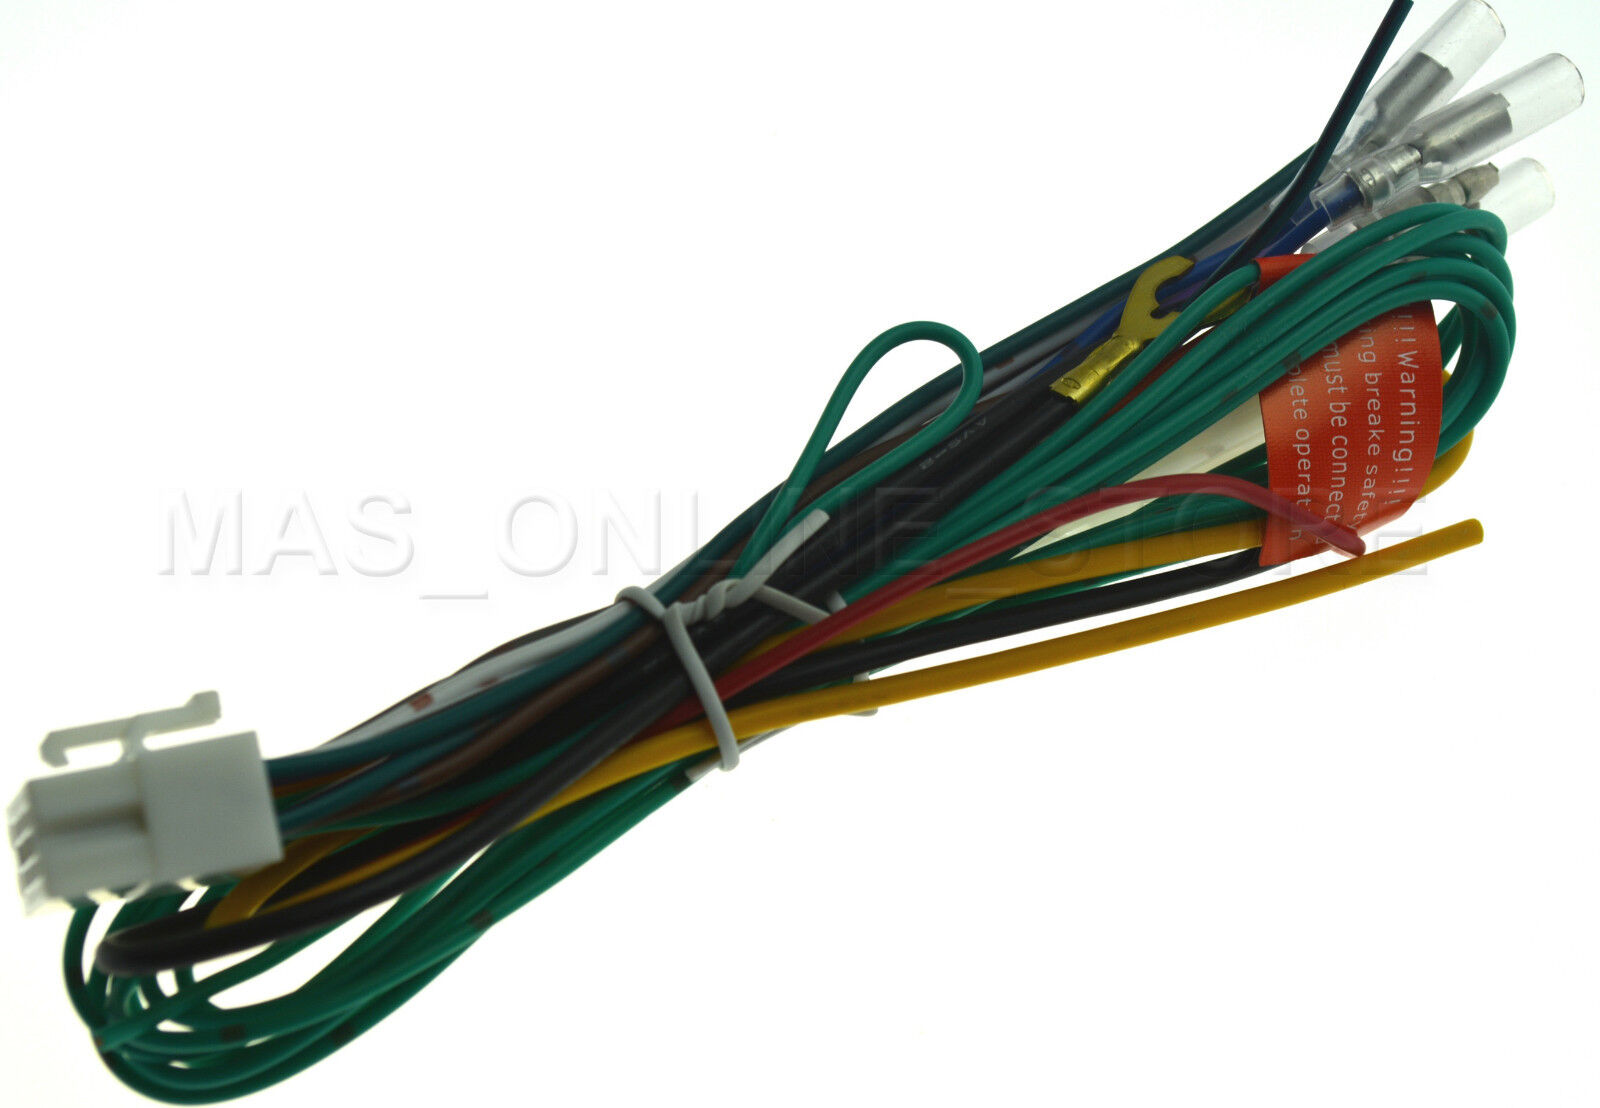 Clarion Vx 409 Vx409 Genuine Power Wire Harness pay cz 101 clarion wiring diagram dolgular com clarion vx404 wiring diagram at alyssarenee.co